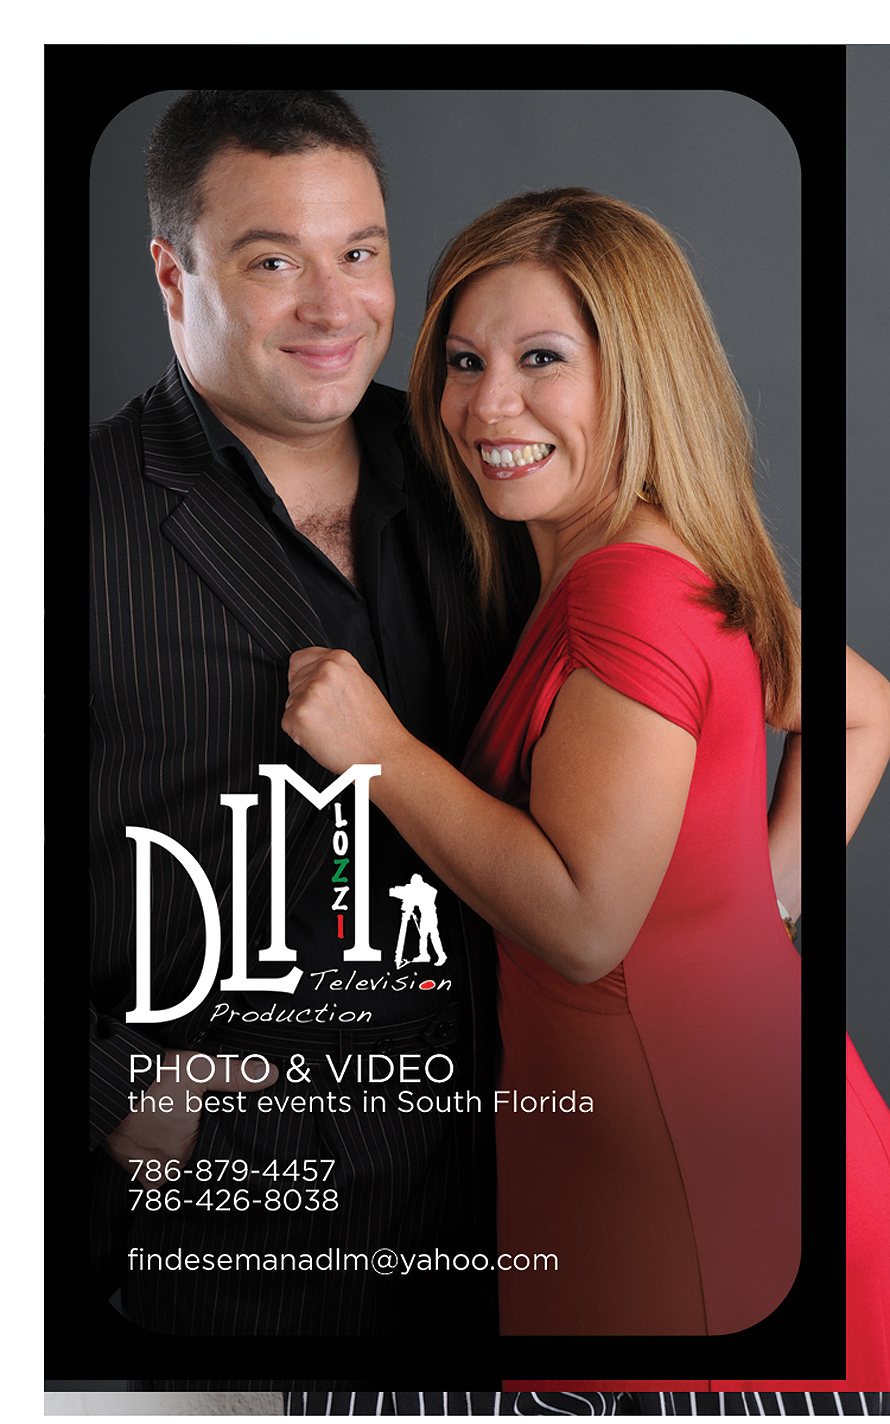 DLM Photo and Video